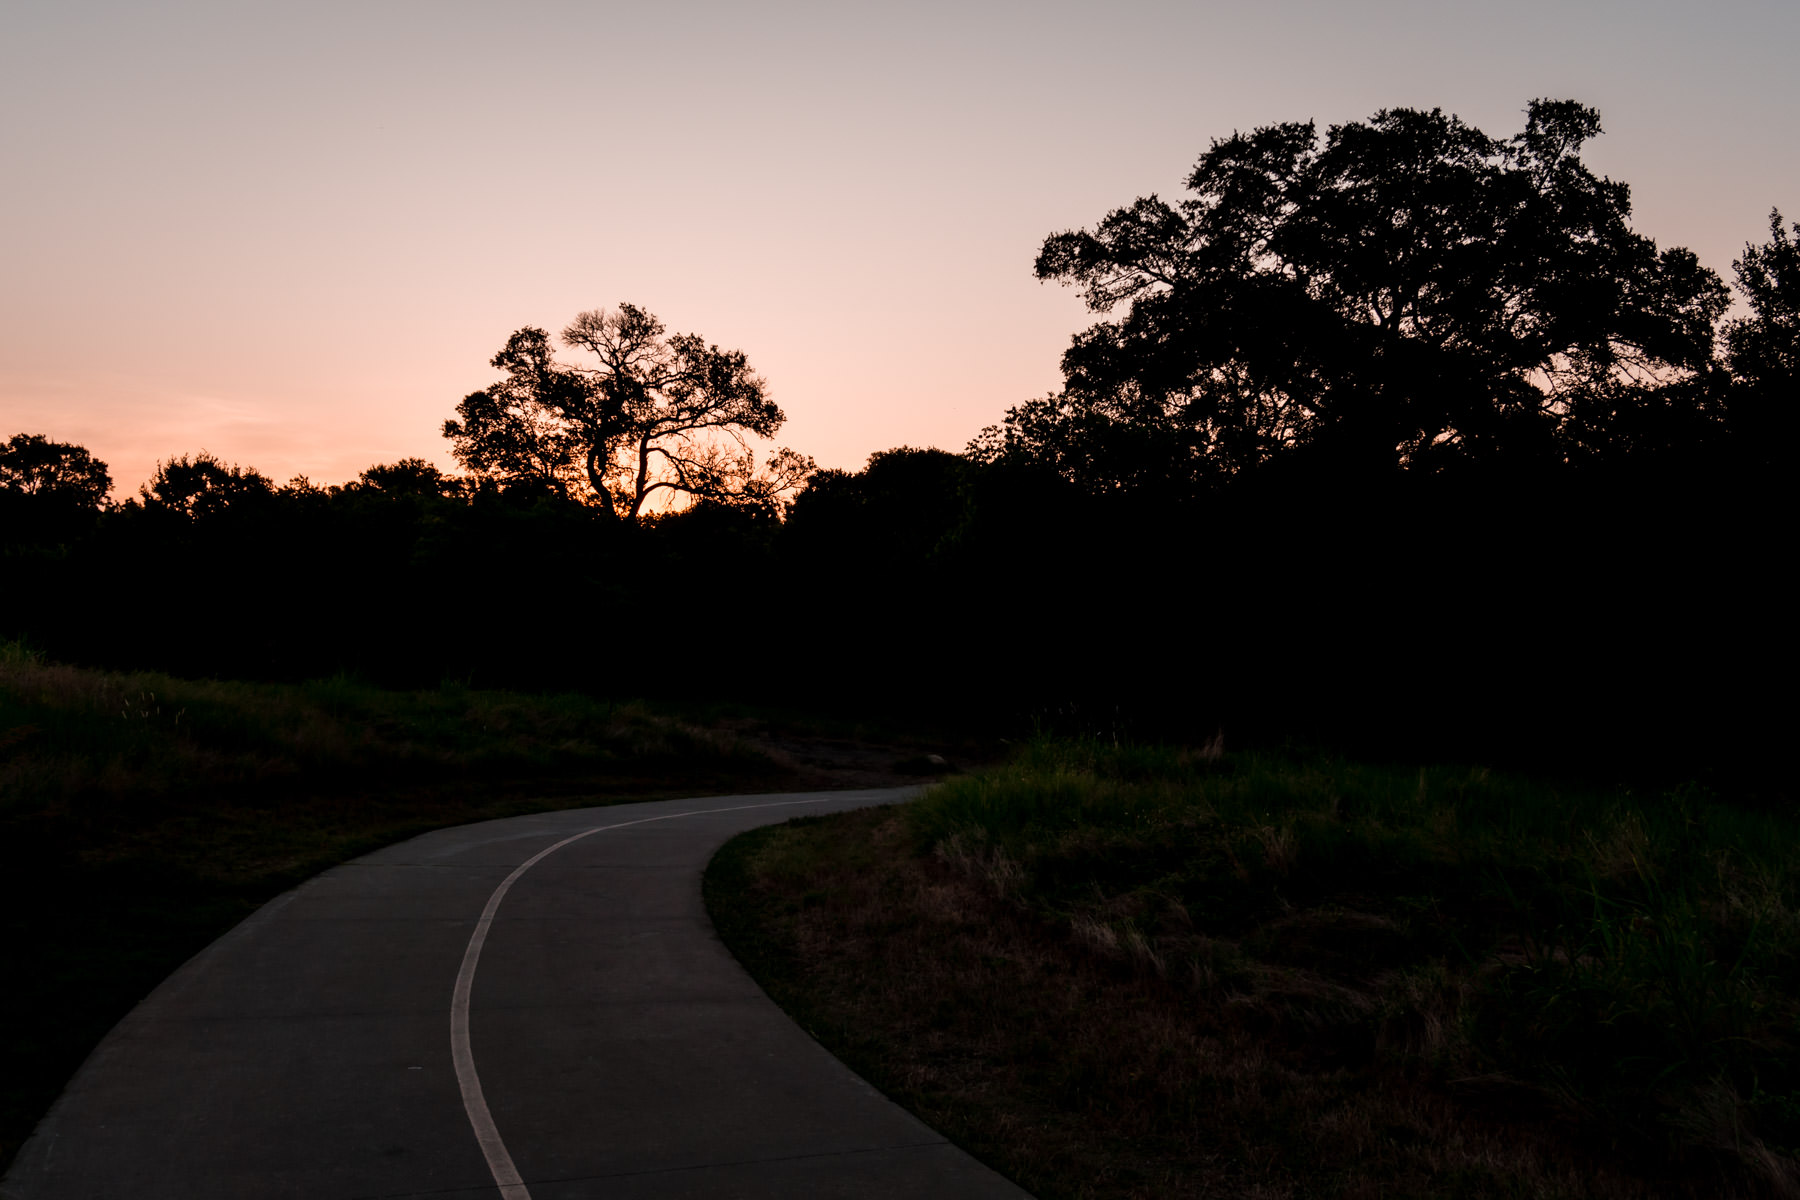 The sun rises on Plano, Texas' Arbor Hills Nature Preserve.